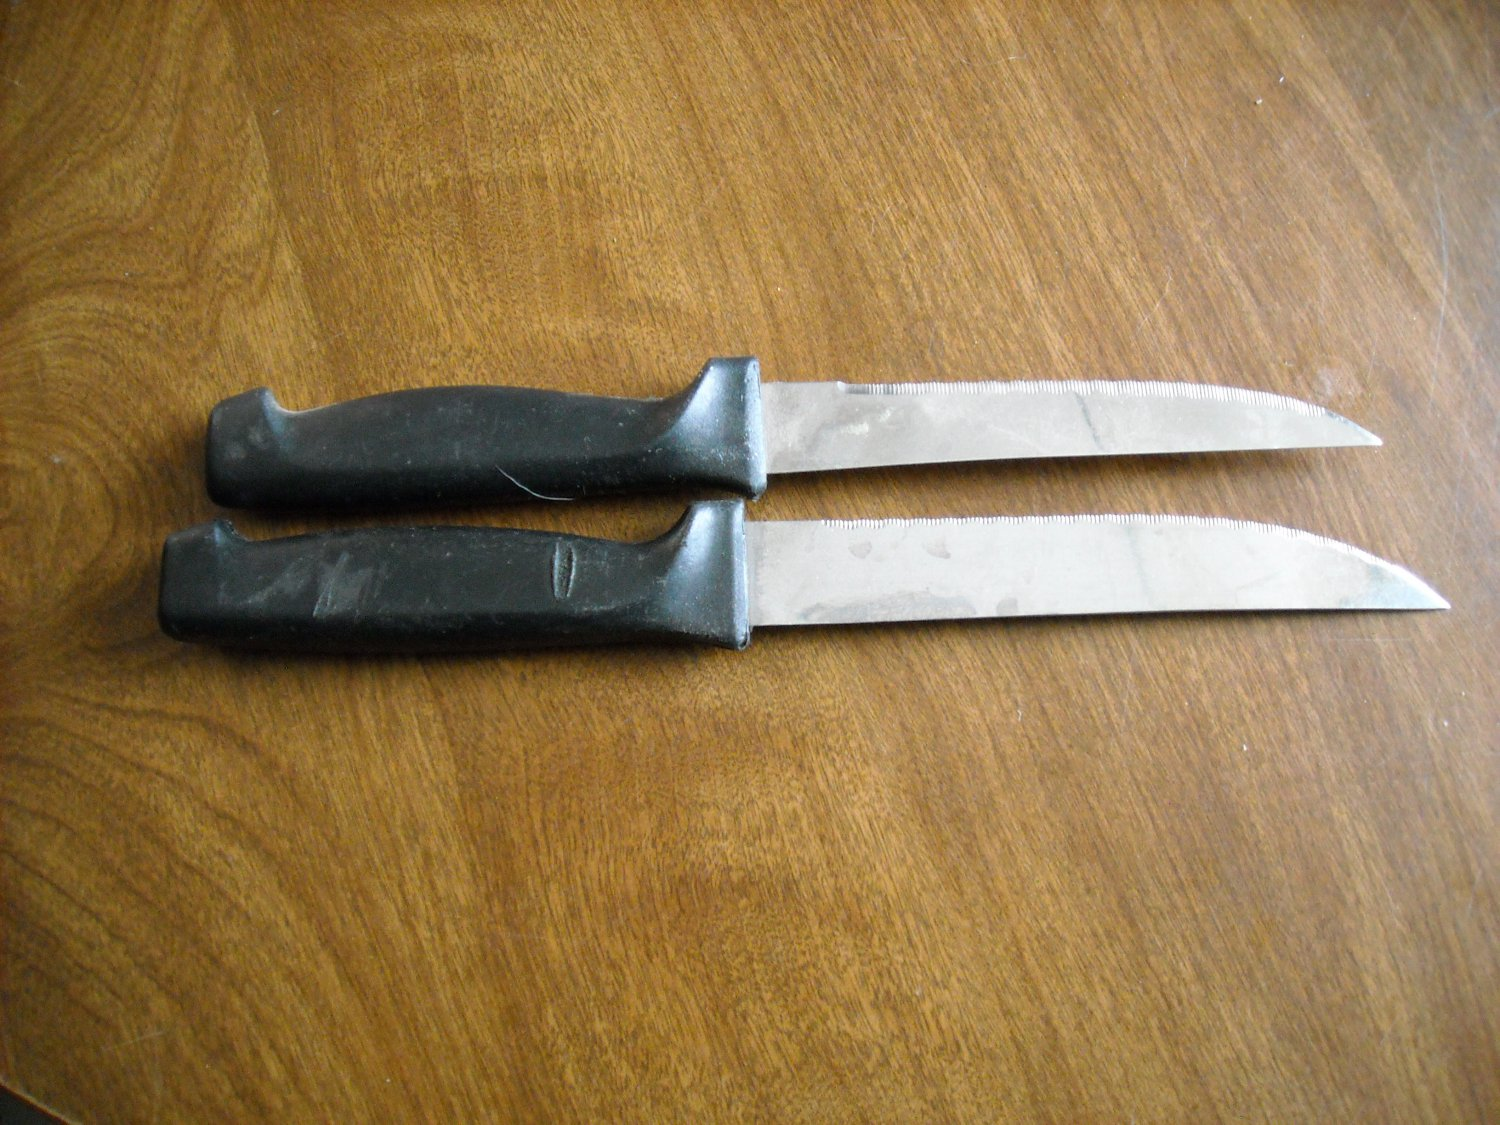 Two Black Handled Stainless Steel Steak Knives (wtnk42)